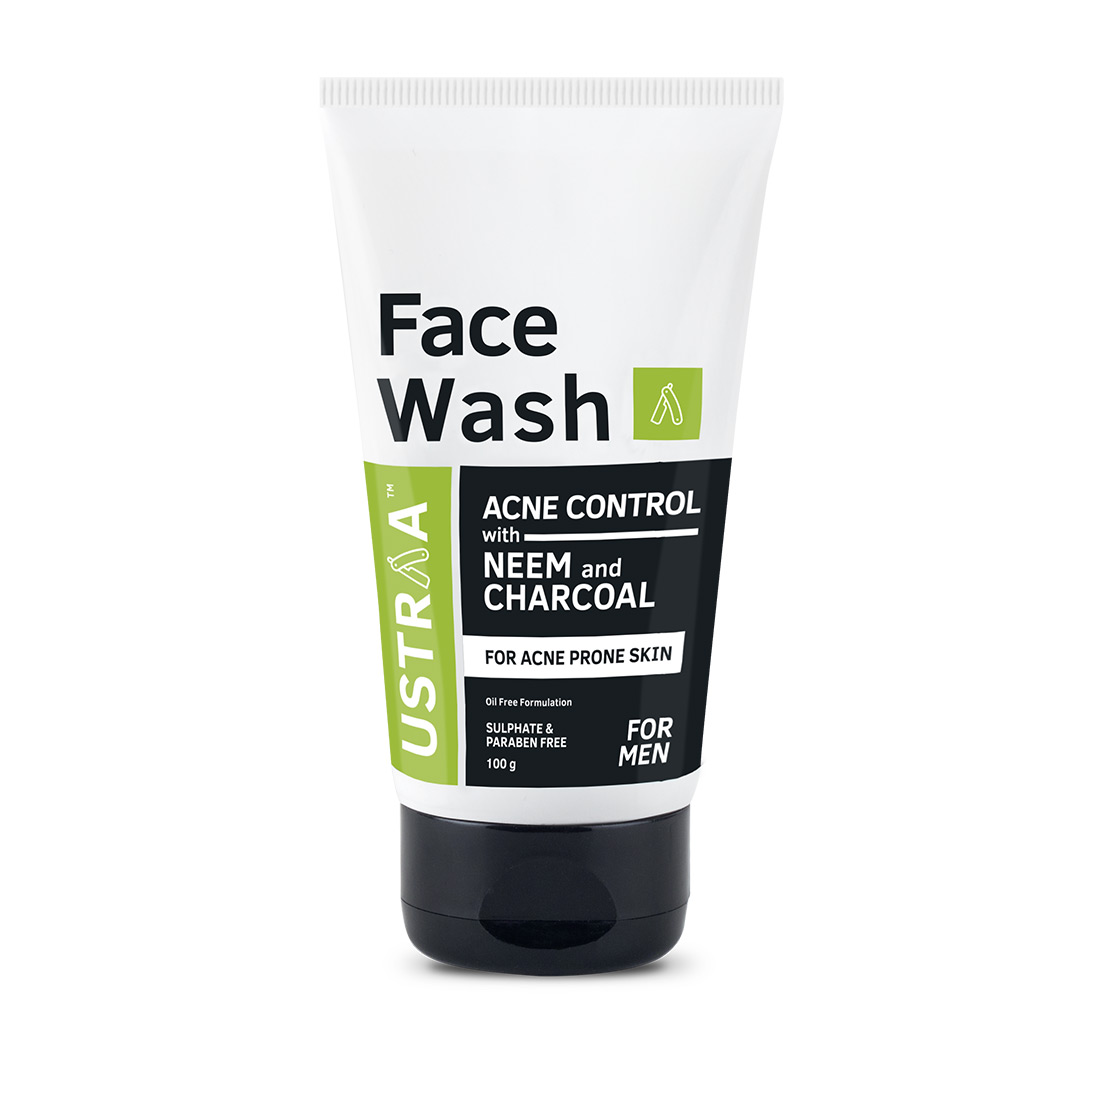 Face Wash Acne Control - With Neem & Charcoal 100g